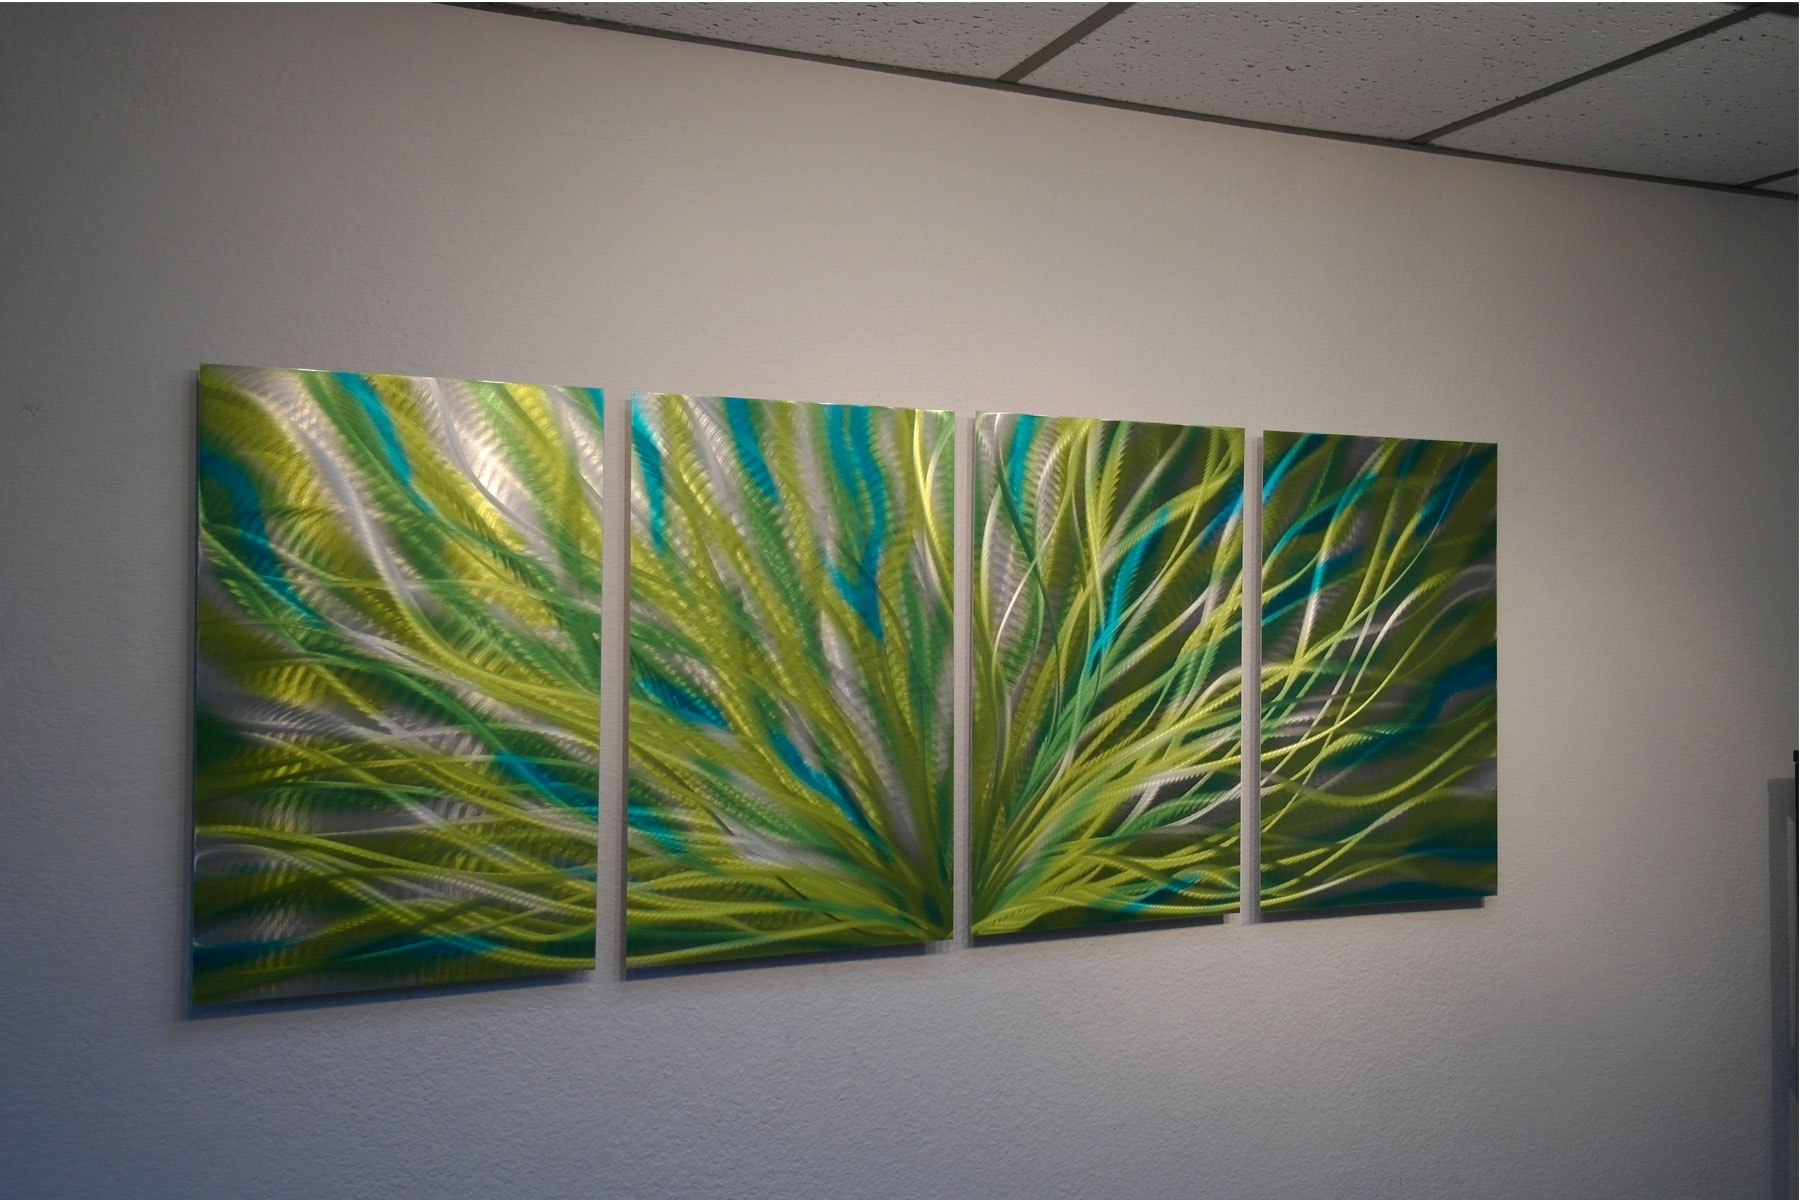 Radiance Cyan Chartreuse – Abstract Metal Wall Art Contemporary Inside Most Recently Released Green Wall Art (View 13 of 15)